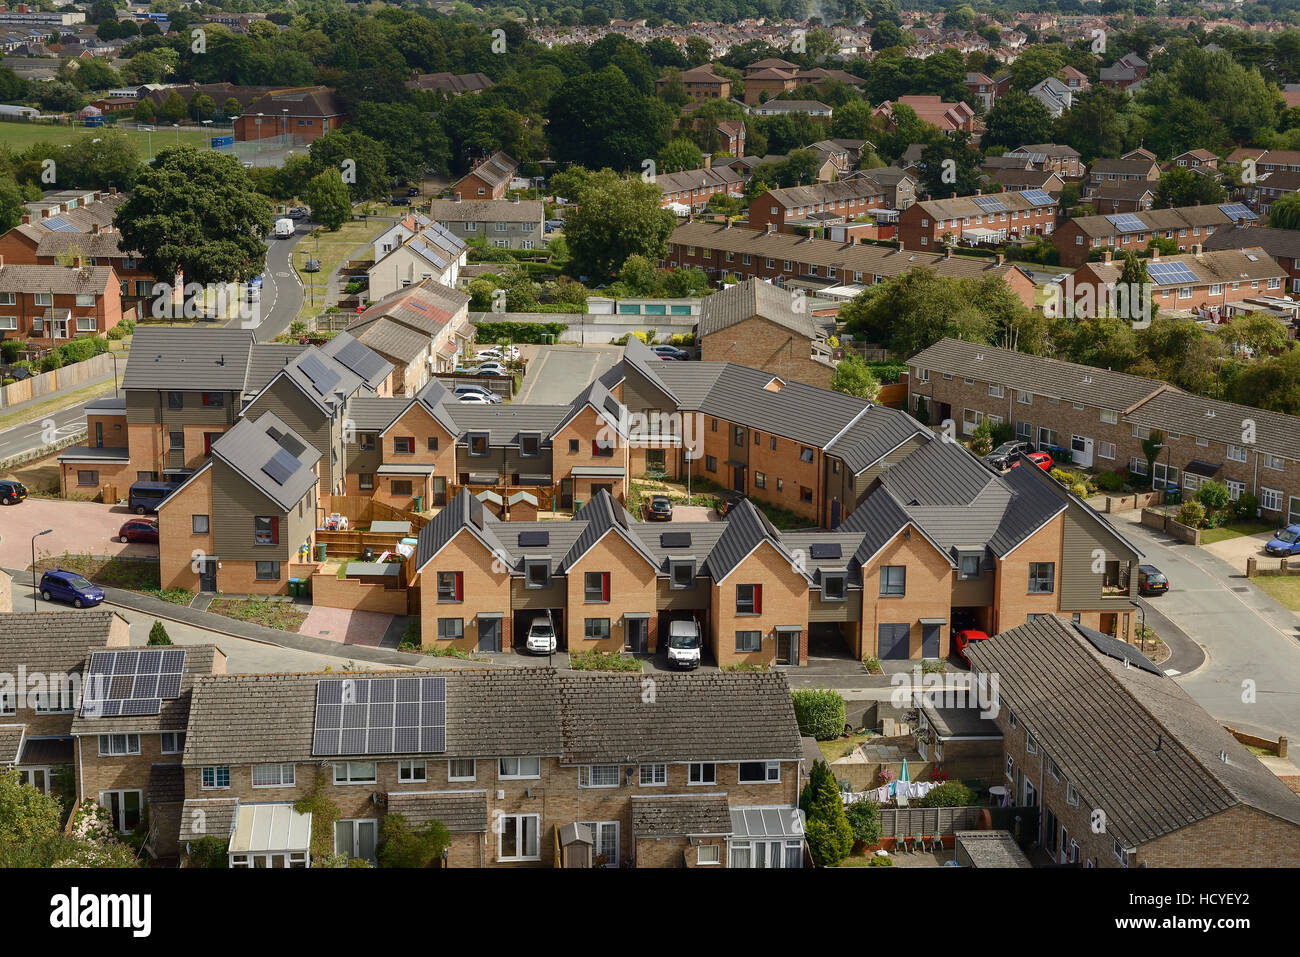 New build social housing on the outskirts of Southampton UK - Stock Image